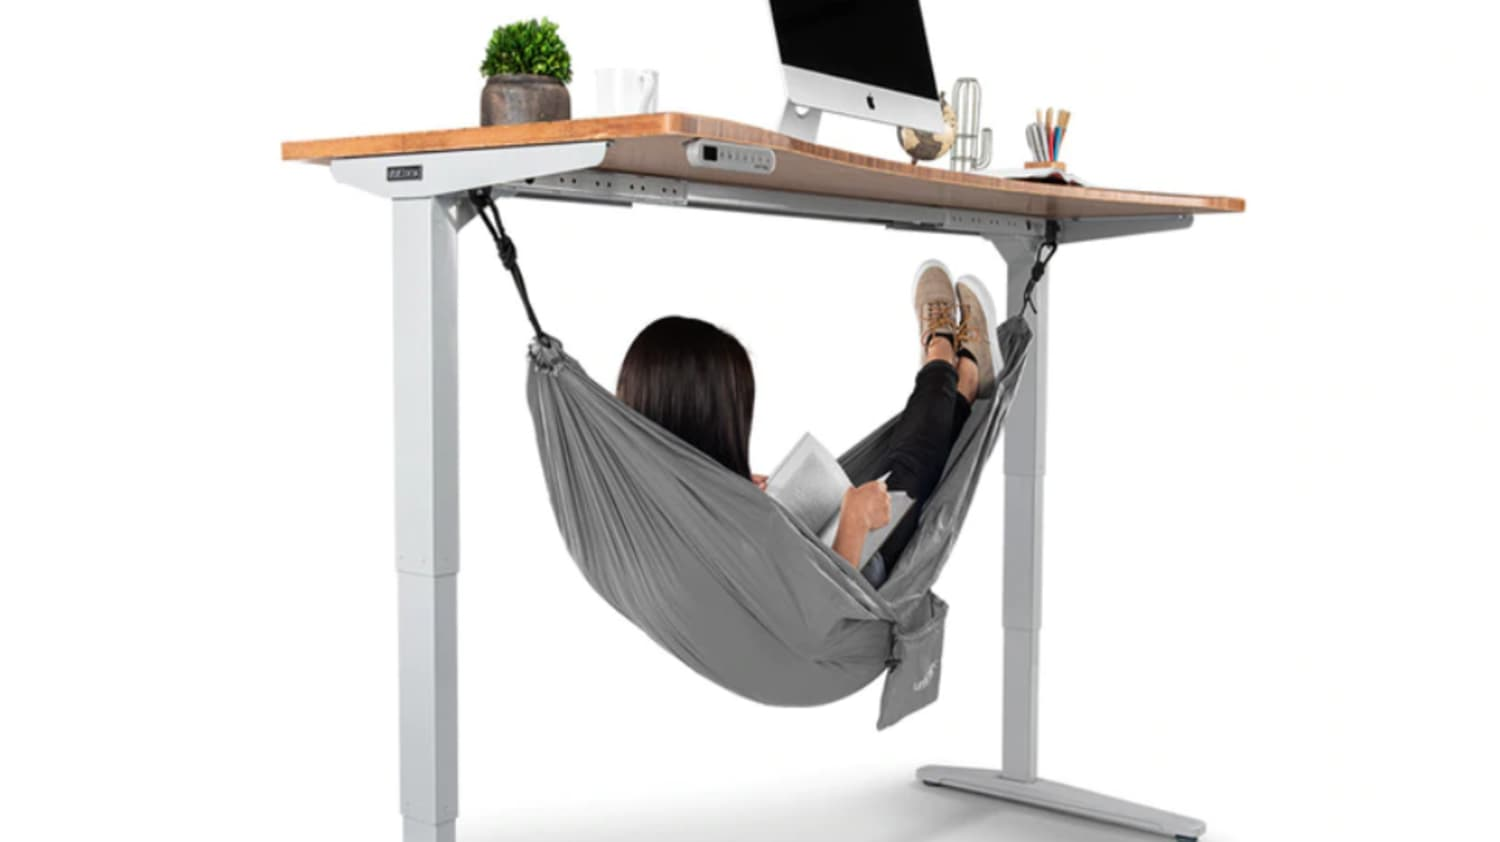 Squeeze in a Quick Nap at Work with This Under-Desk Hammock